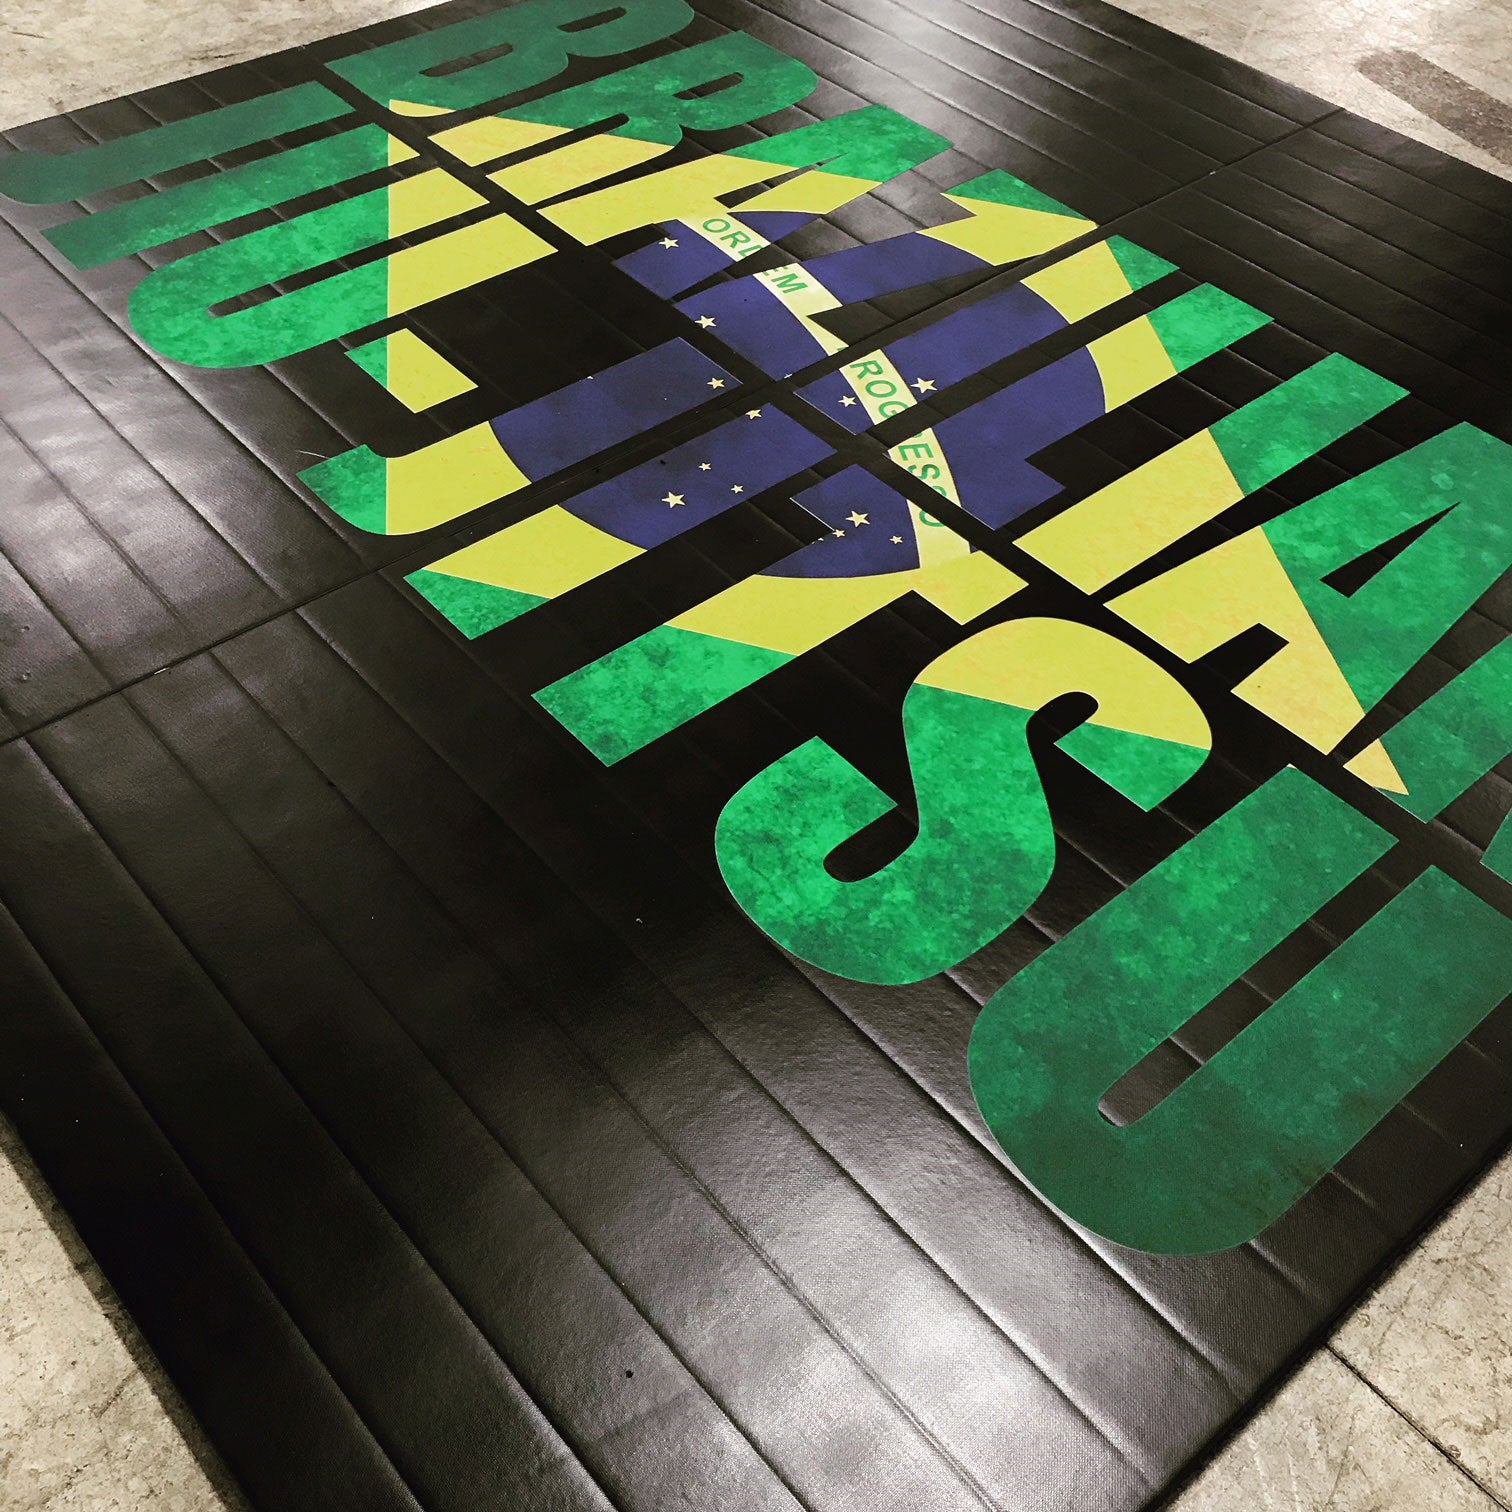 brazilian jiu-jitsu mat for sale